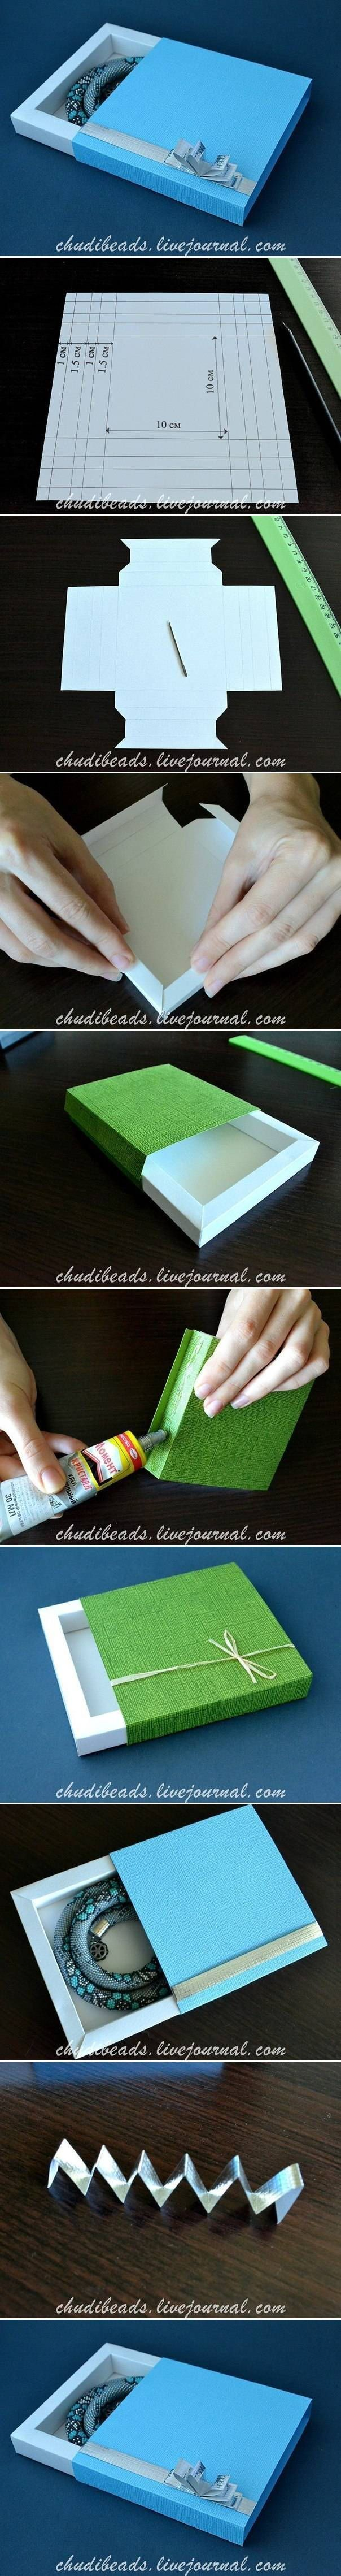 DIY Square Gift Box DIY Projects